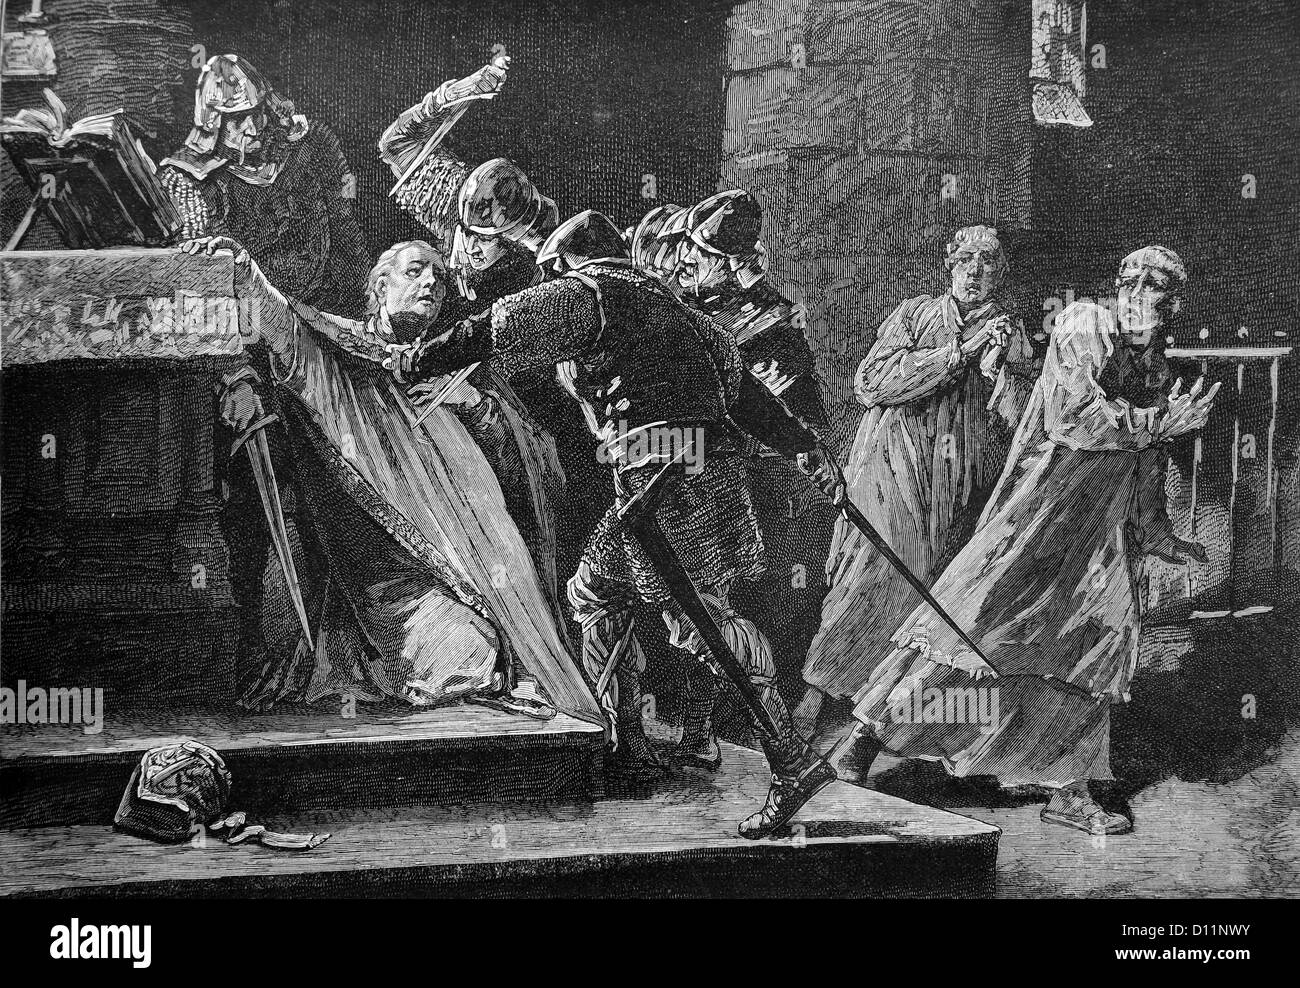 Illustration Of The Murder Of Archbishop Thomas Becket In Canterbury Cathedral 1170 A.D - Stock Image